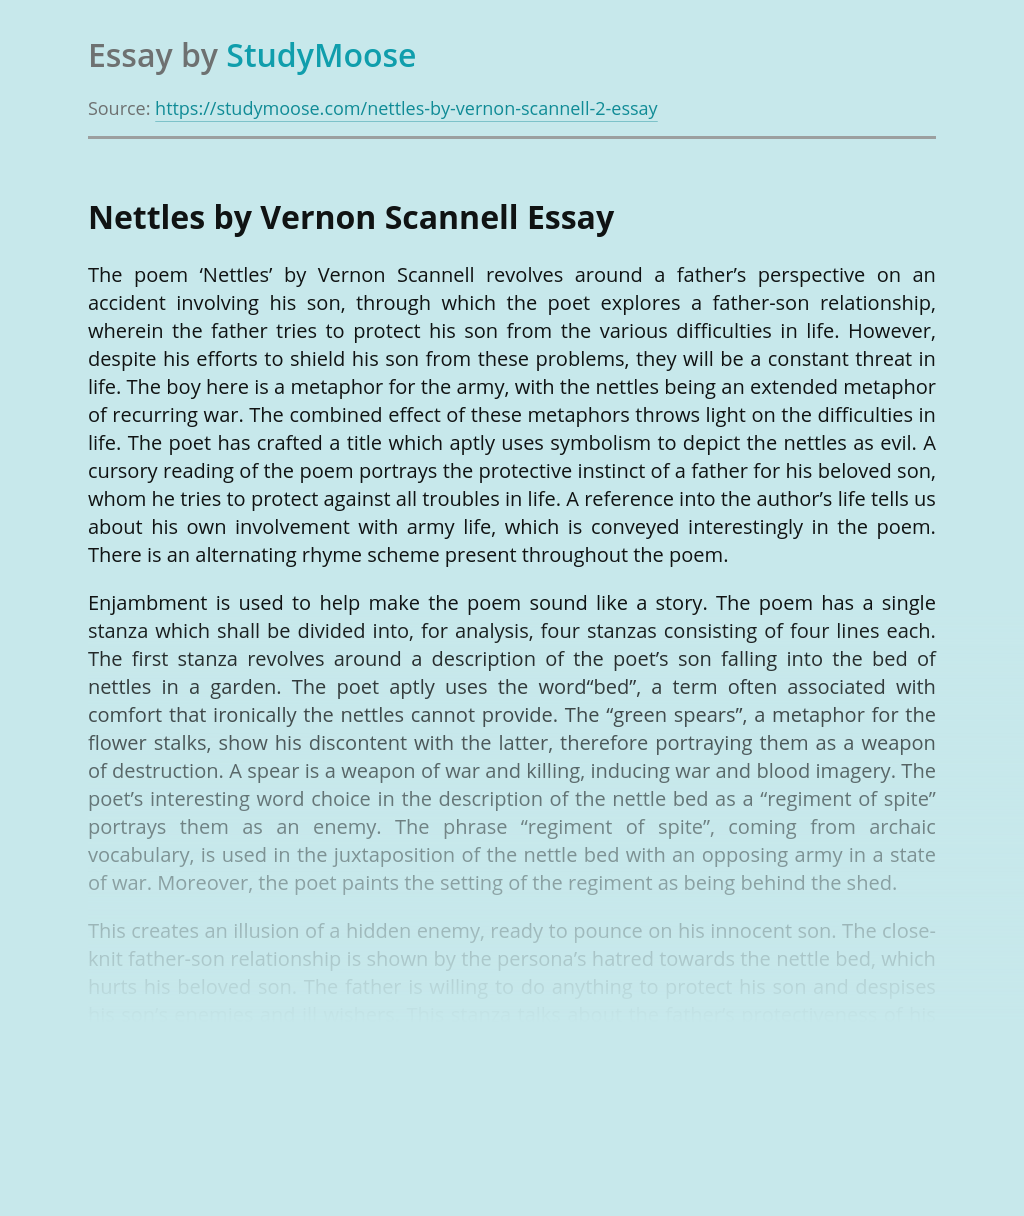 Analysis of the Vernon Scannell's Poem Nettles